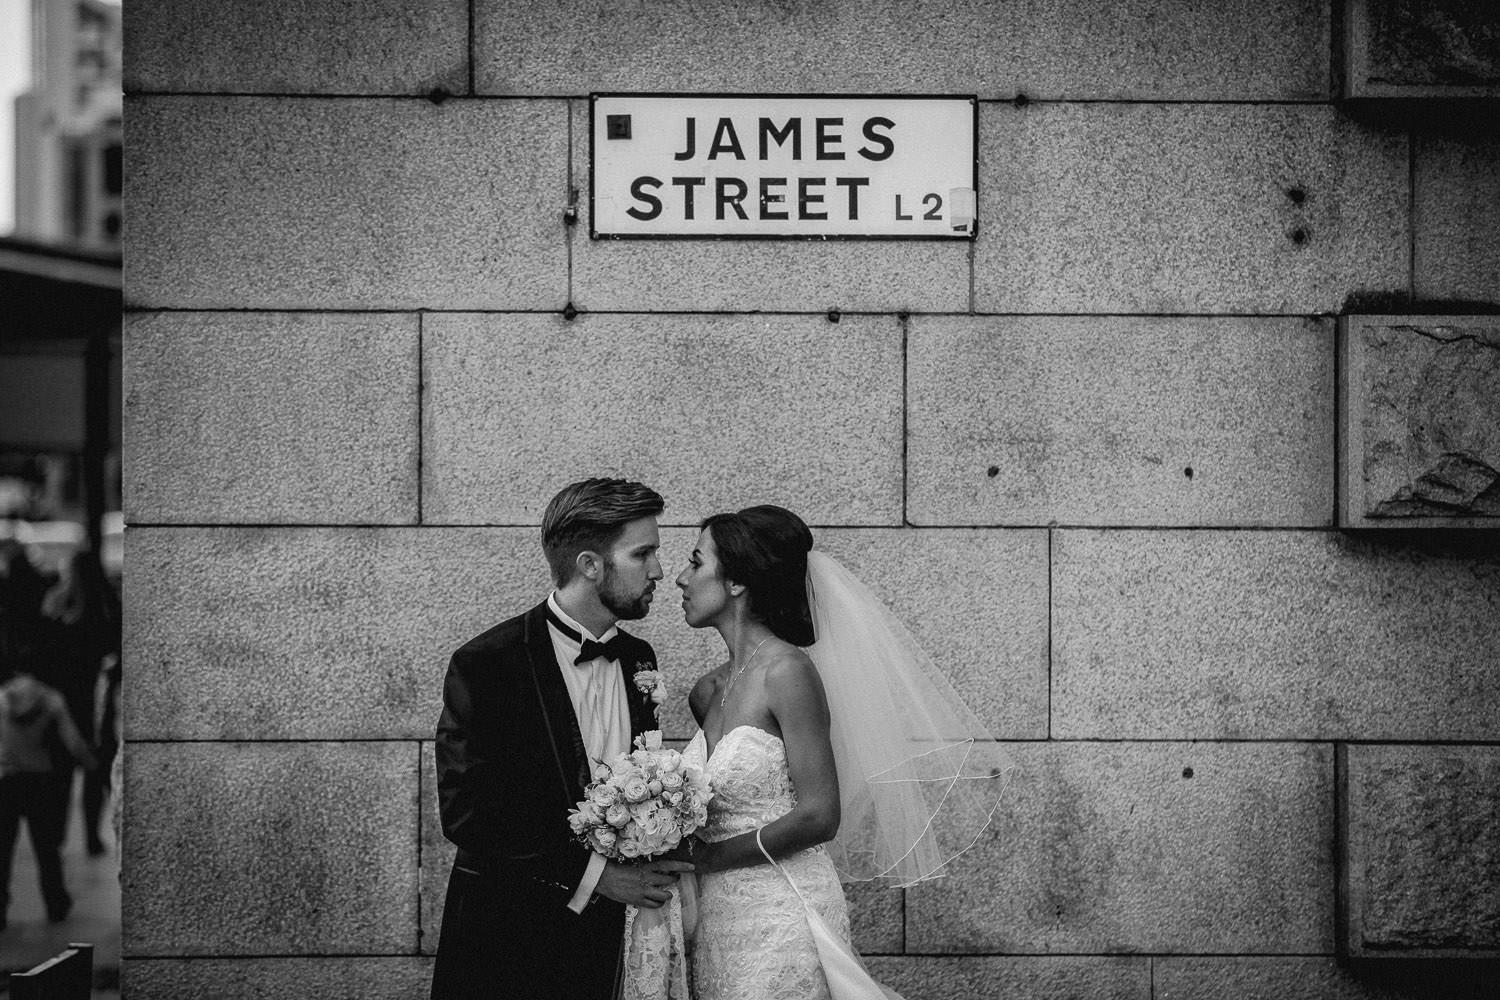 Liverpool wedding photographer, photo of bride and groom on James street Liverpool